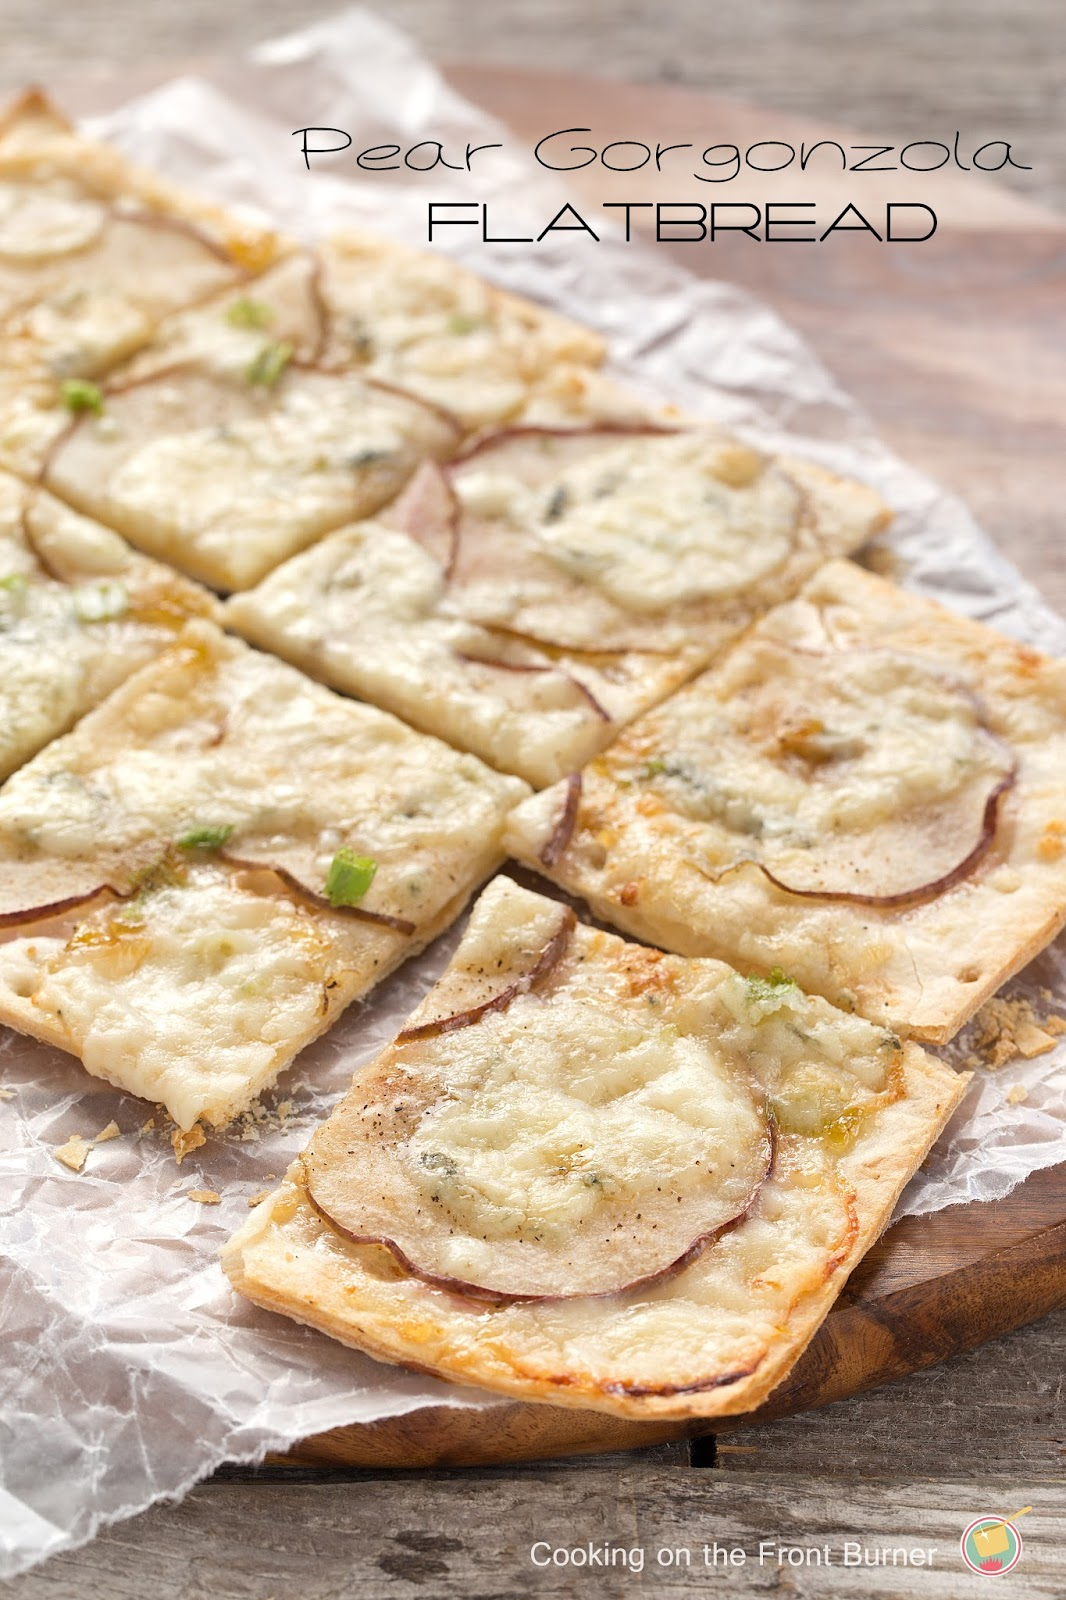 Pear Gorgonzola Flatbread by Cookin on the Front Burner